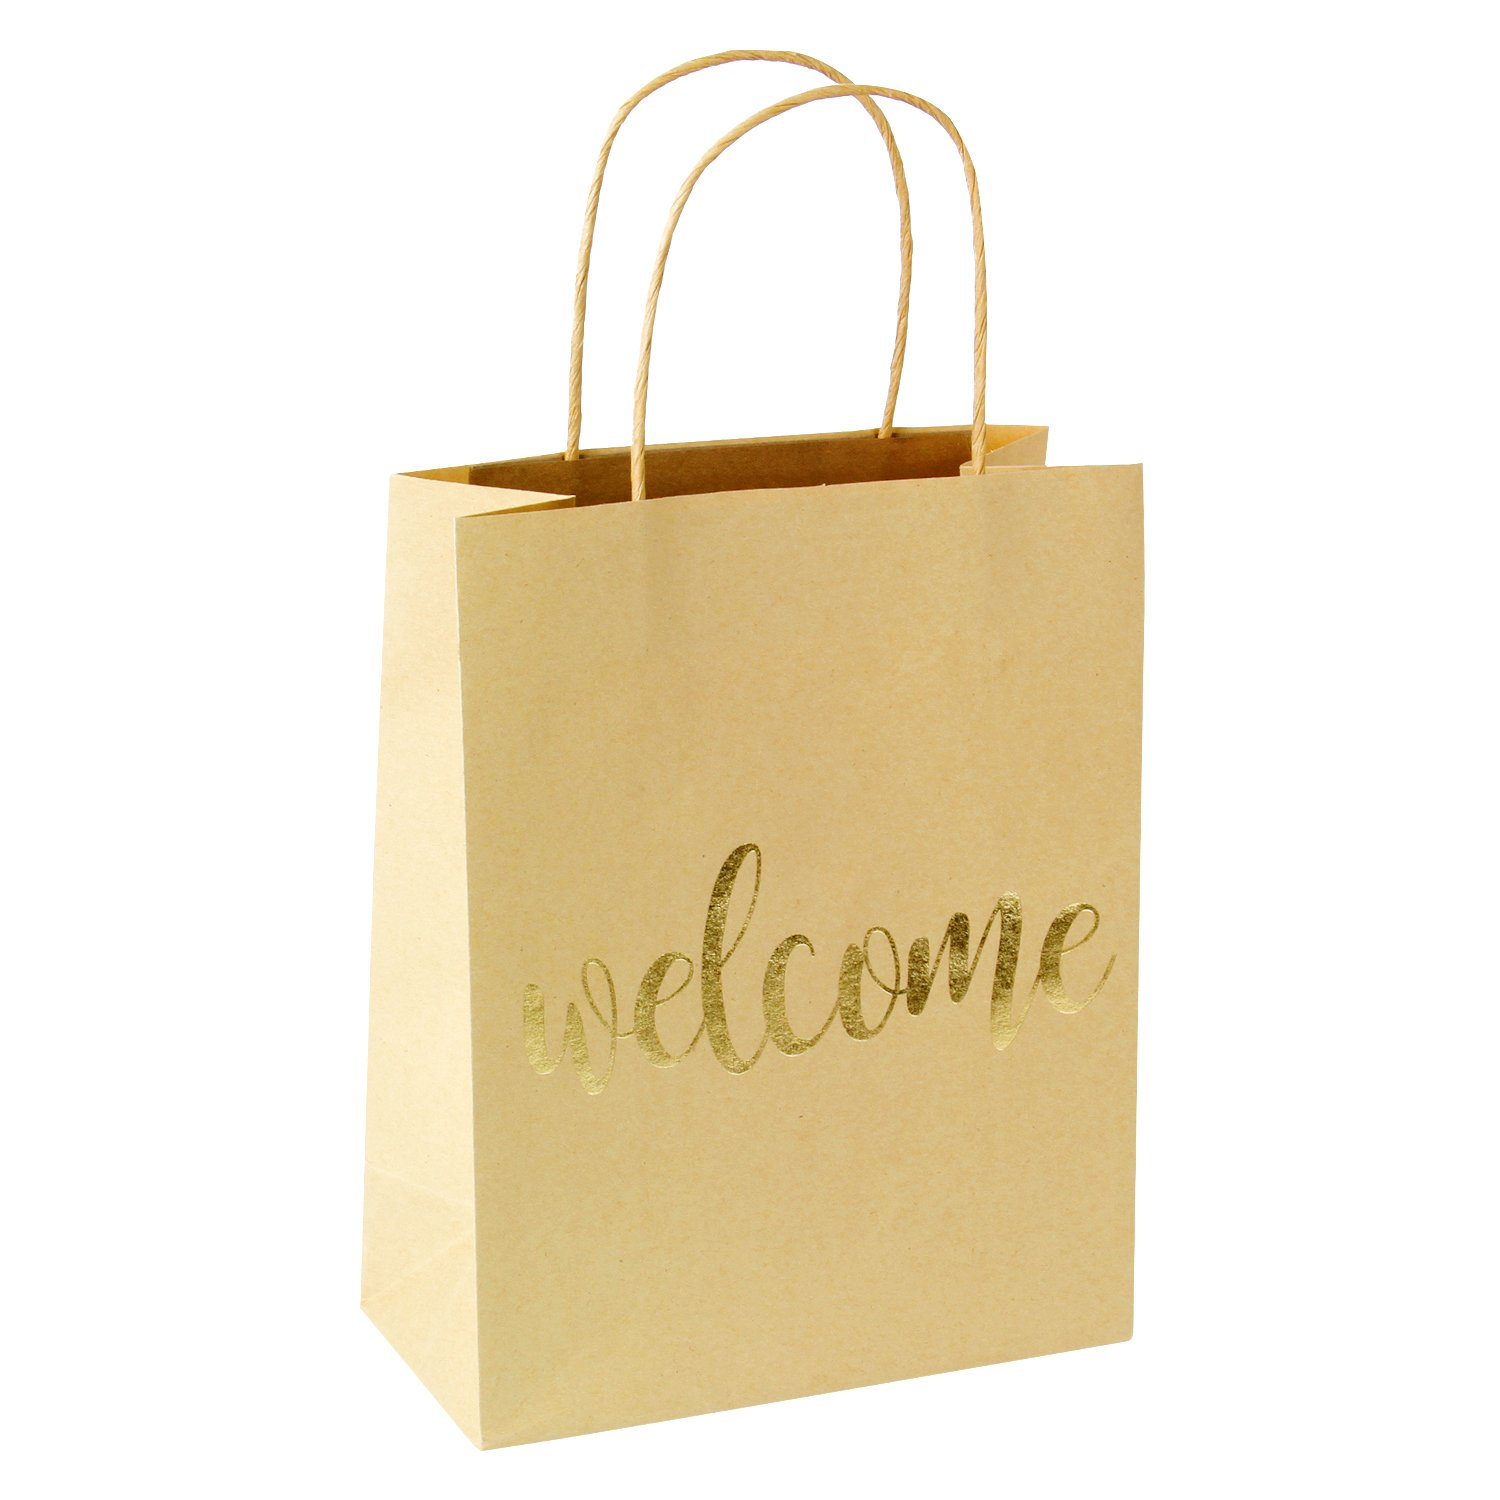 LaRibbon Medium Welcome Gift Bags - Gold Foil Brown Paper Bags with Handles for Wedding, Birthday, Baby Shower, Party Favors - 12 Pack - 8'' x 4'' x 10'' by LaRibbons (Image #3)